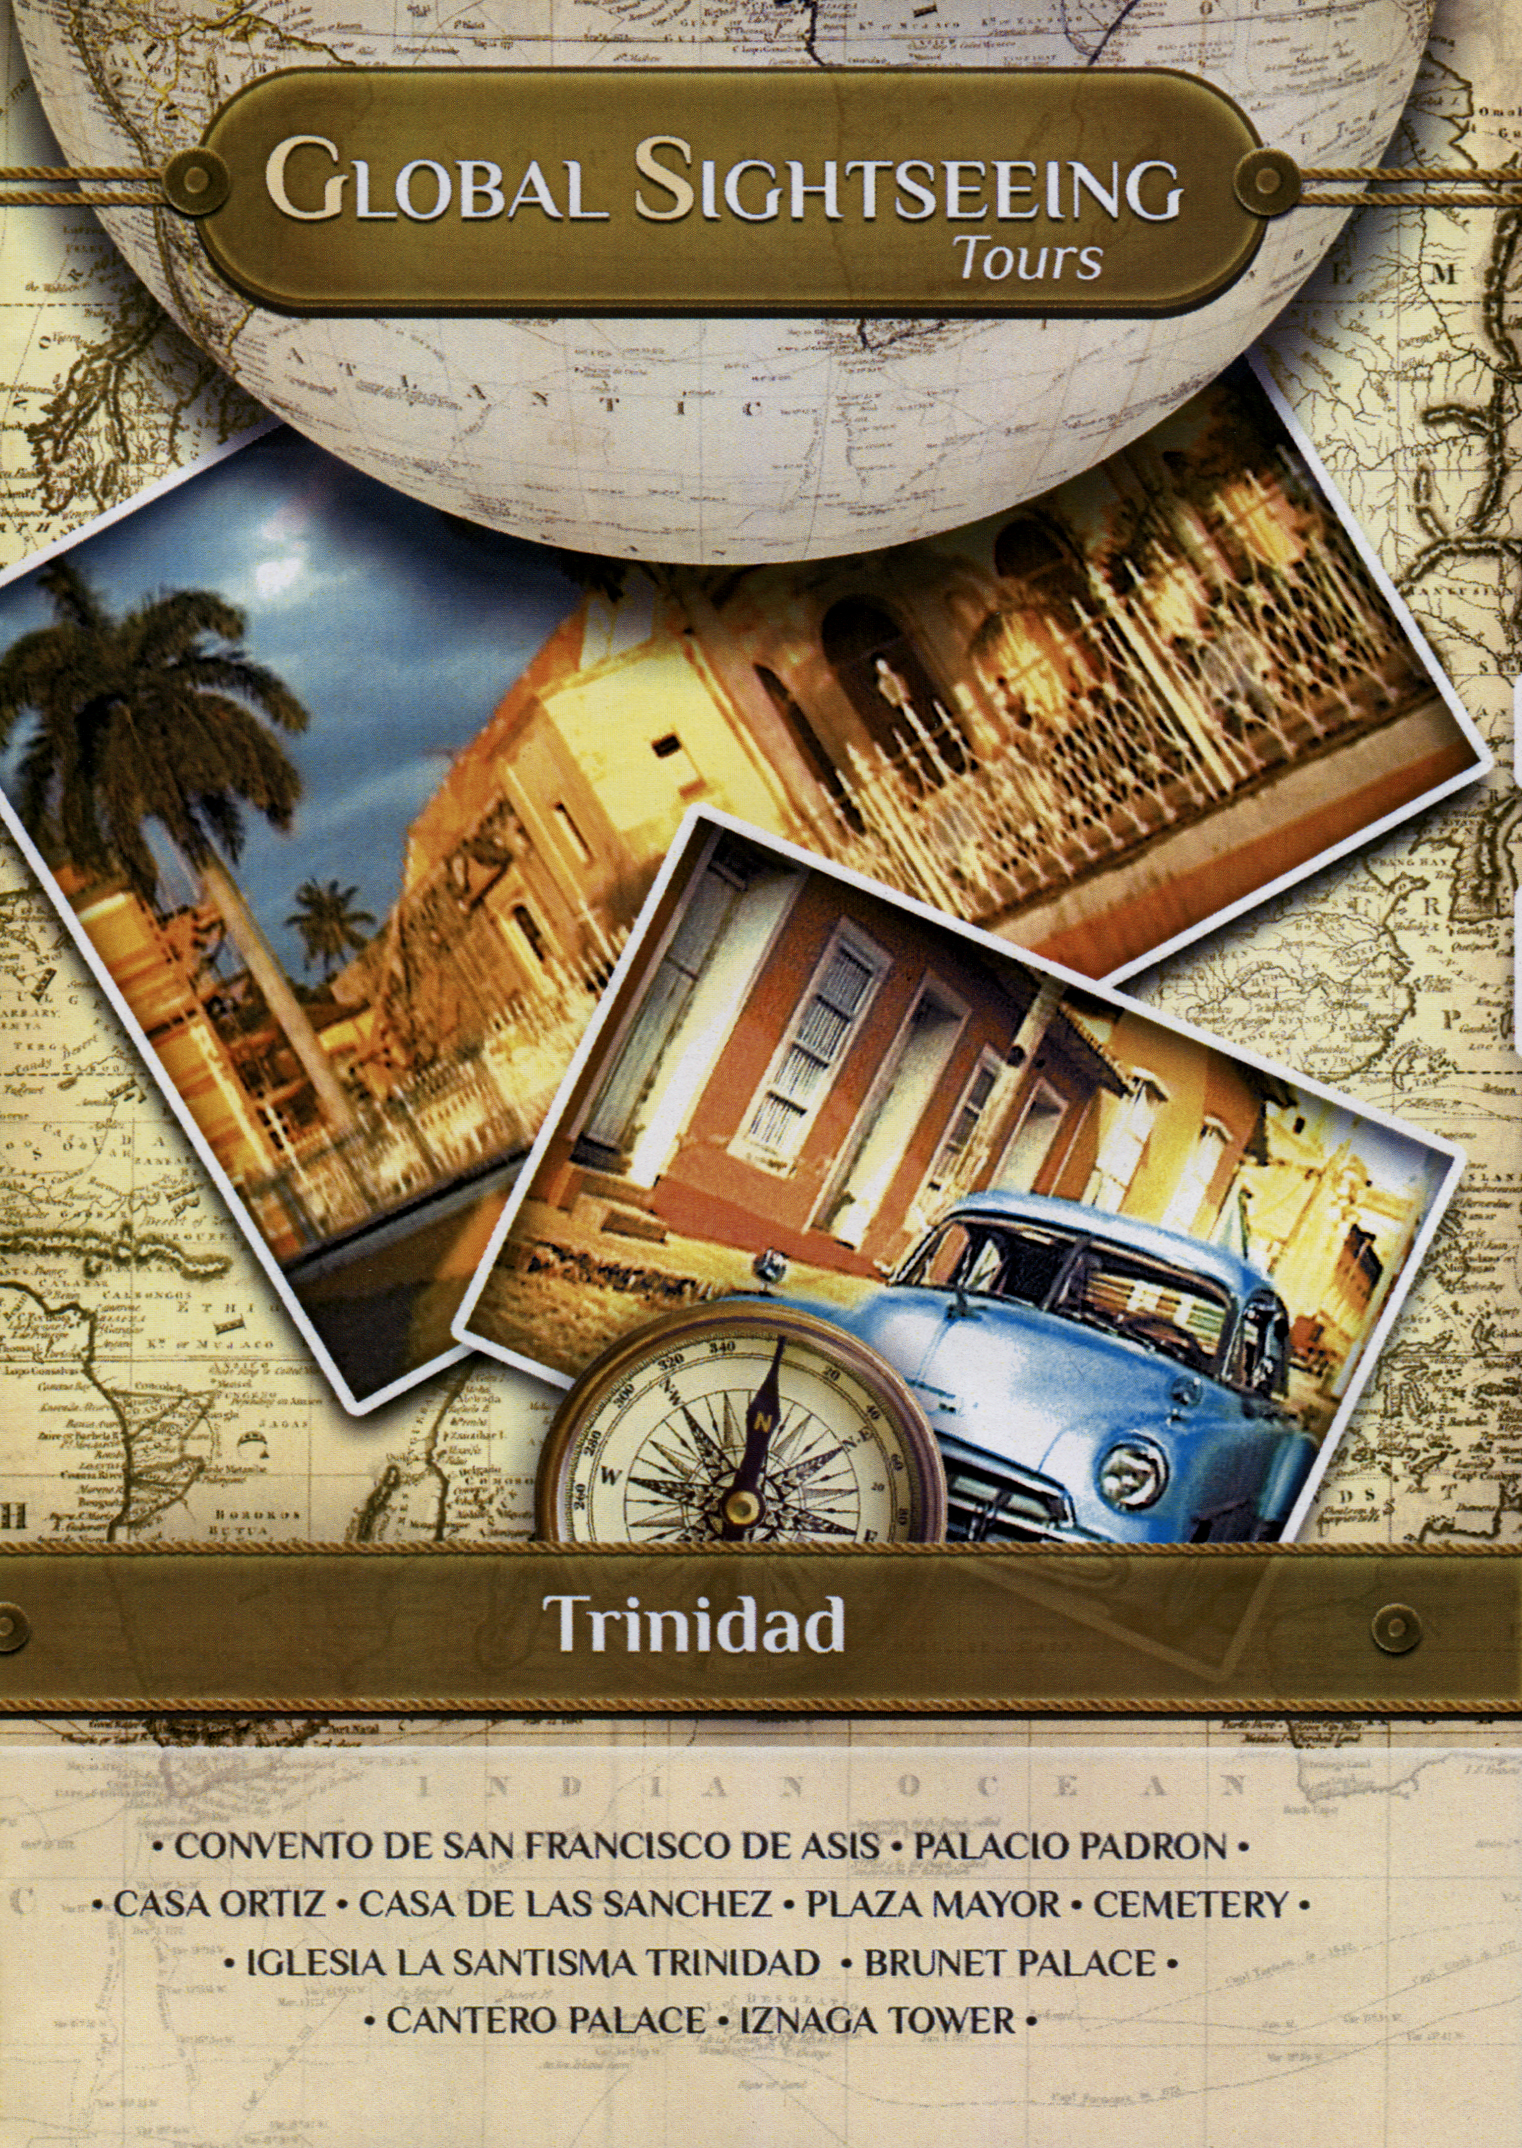 Global Sightseeing Tours: Trinidad